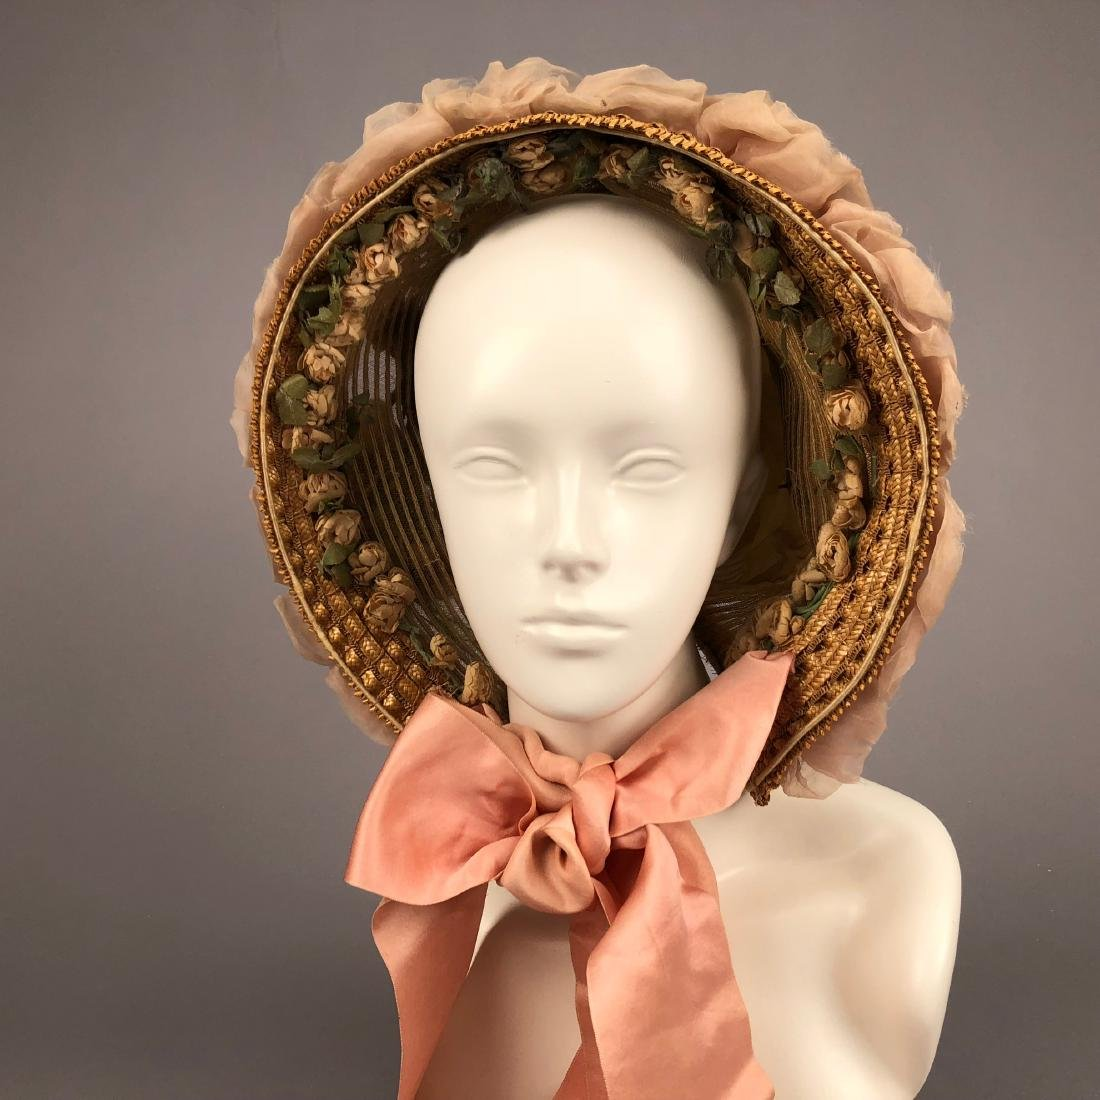 TWO BONNETS with HORSEHAIR, 1860, 1863 - 2